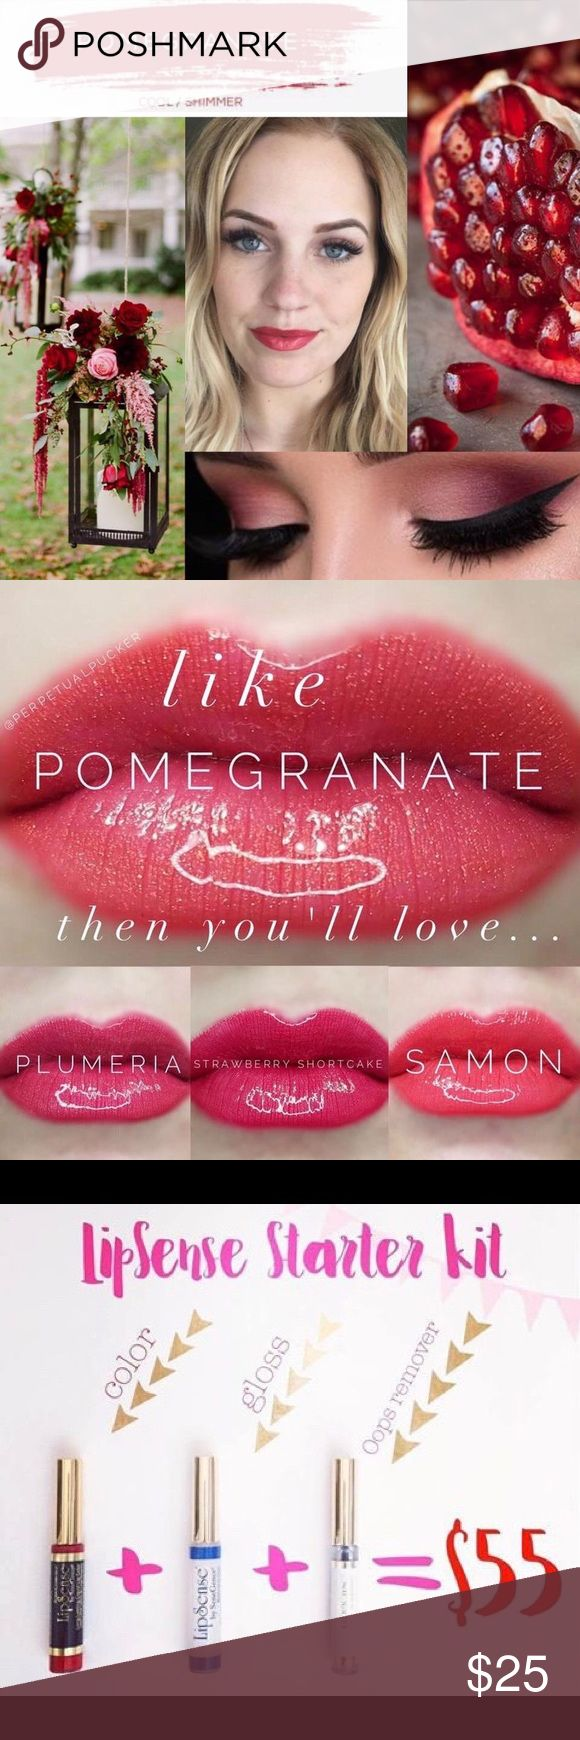 Pomegranate Long lasting lip color🤗 Lasts up to 18 hours❗️Also there are a variety of colors 🌈With this product there is no worries on kissing your loved ones, it's kiss proof💋. No worries on accidentally smudging it off either! Best product I have ever owned😀 Makeup Lipstick